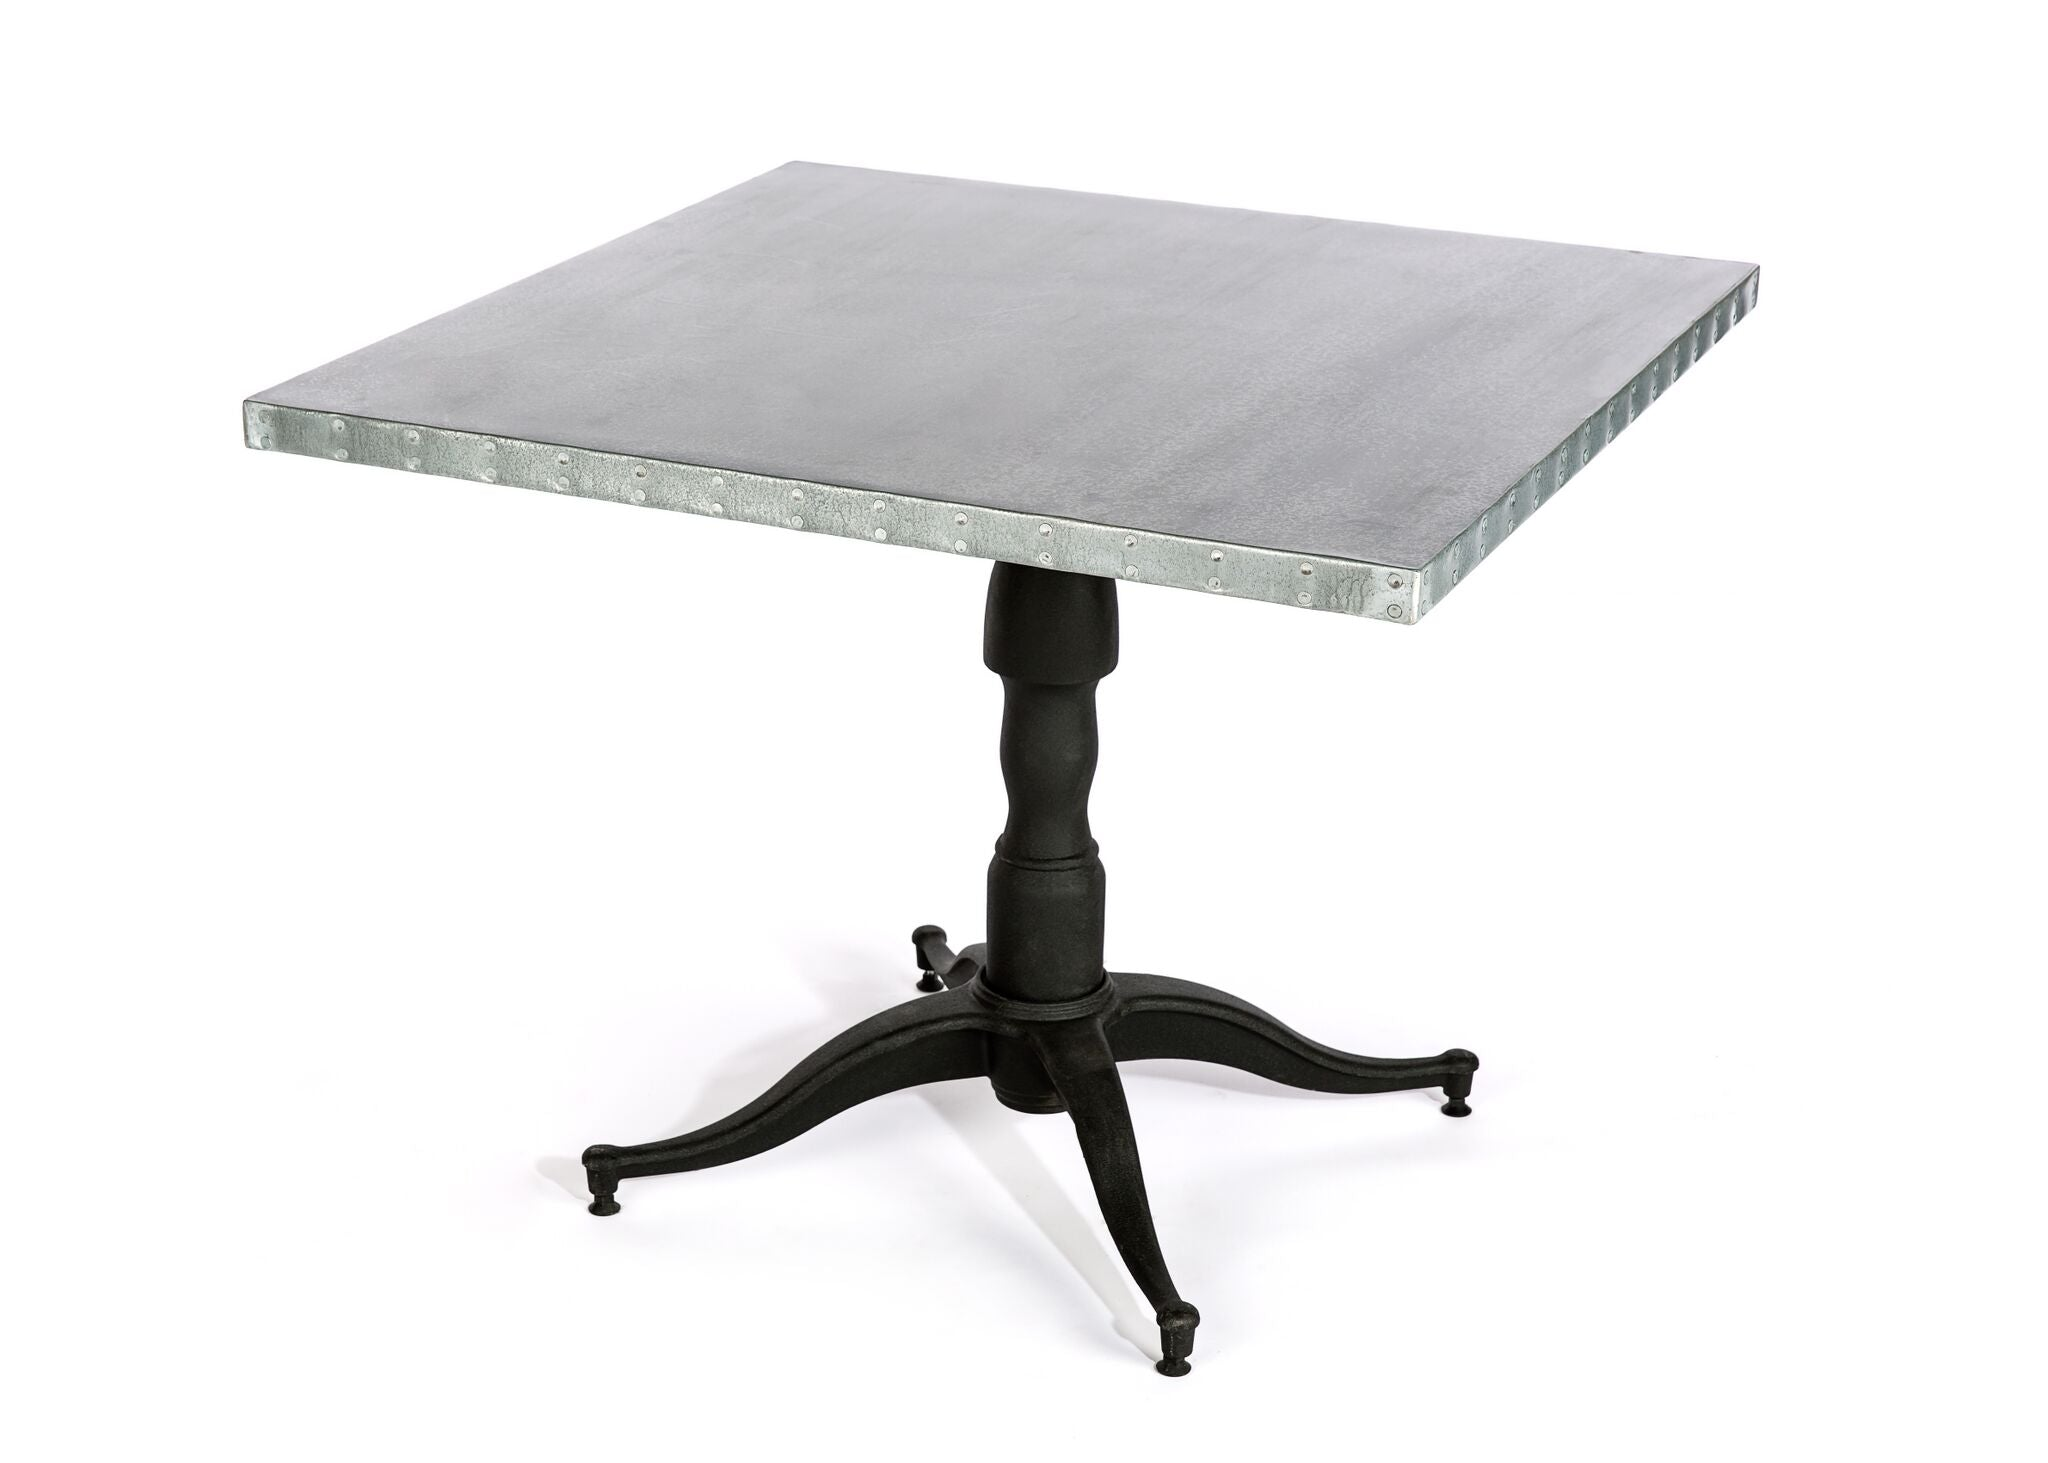 Zinc Square Tables | Francesca Table | CLASSIC | Natural Black Walnut | CUSTOM SIZE D 42 H 29 | kingston-krafts-zinc-tables.